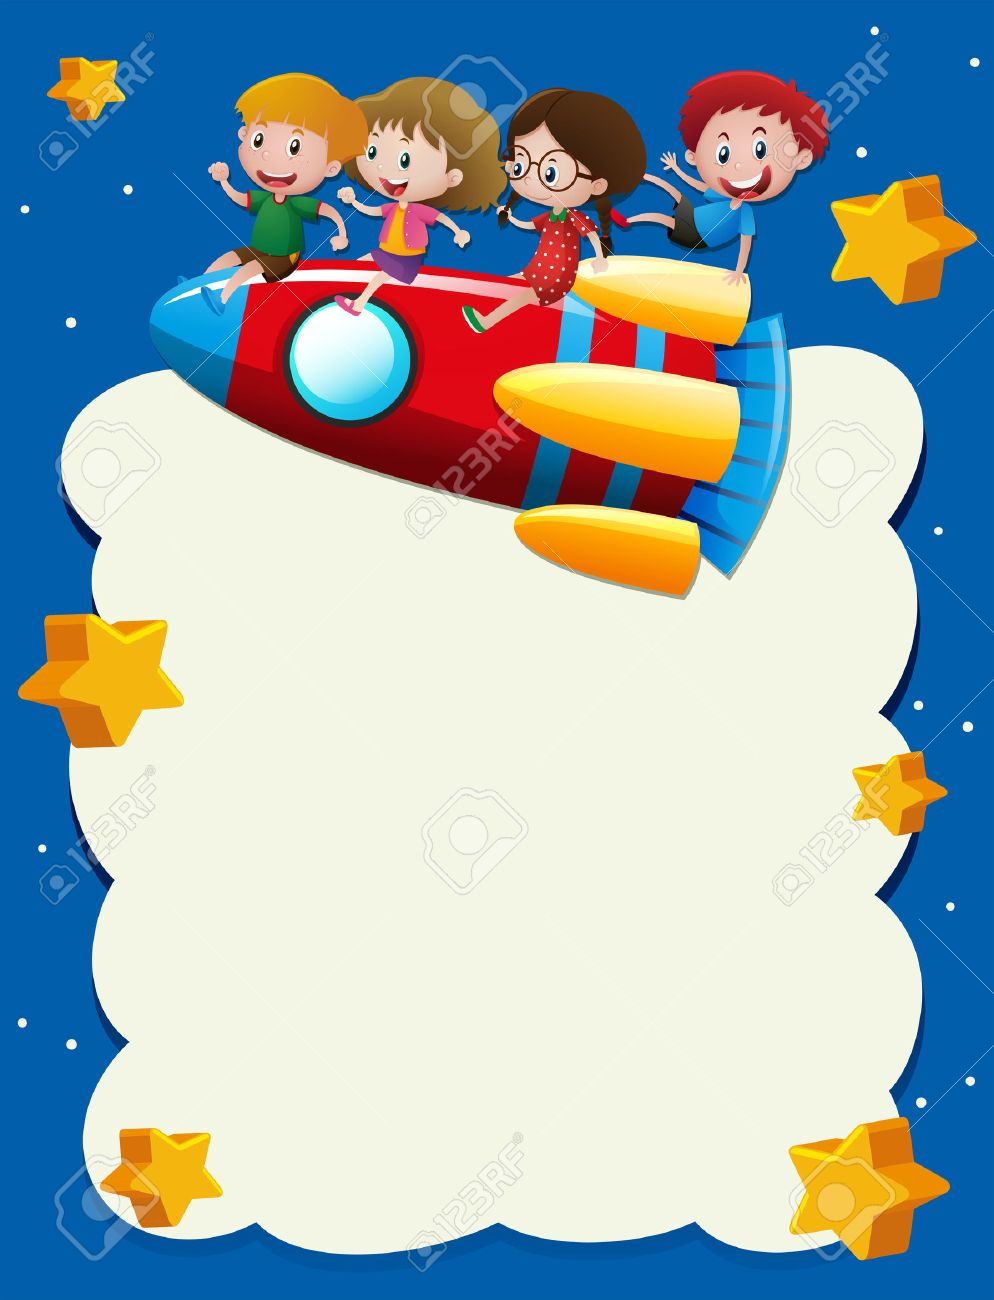 border template with kids riding on rocket in space illustration